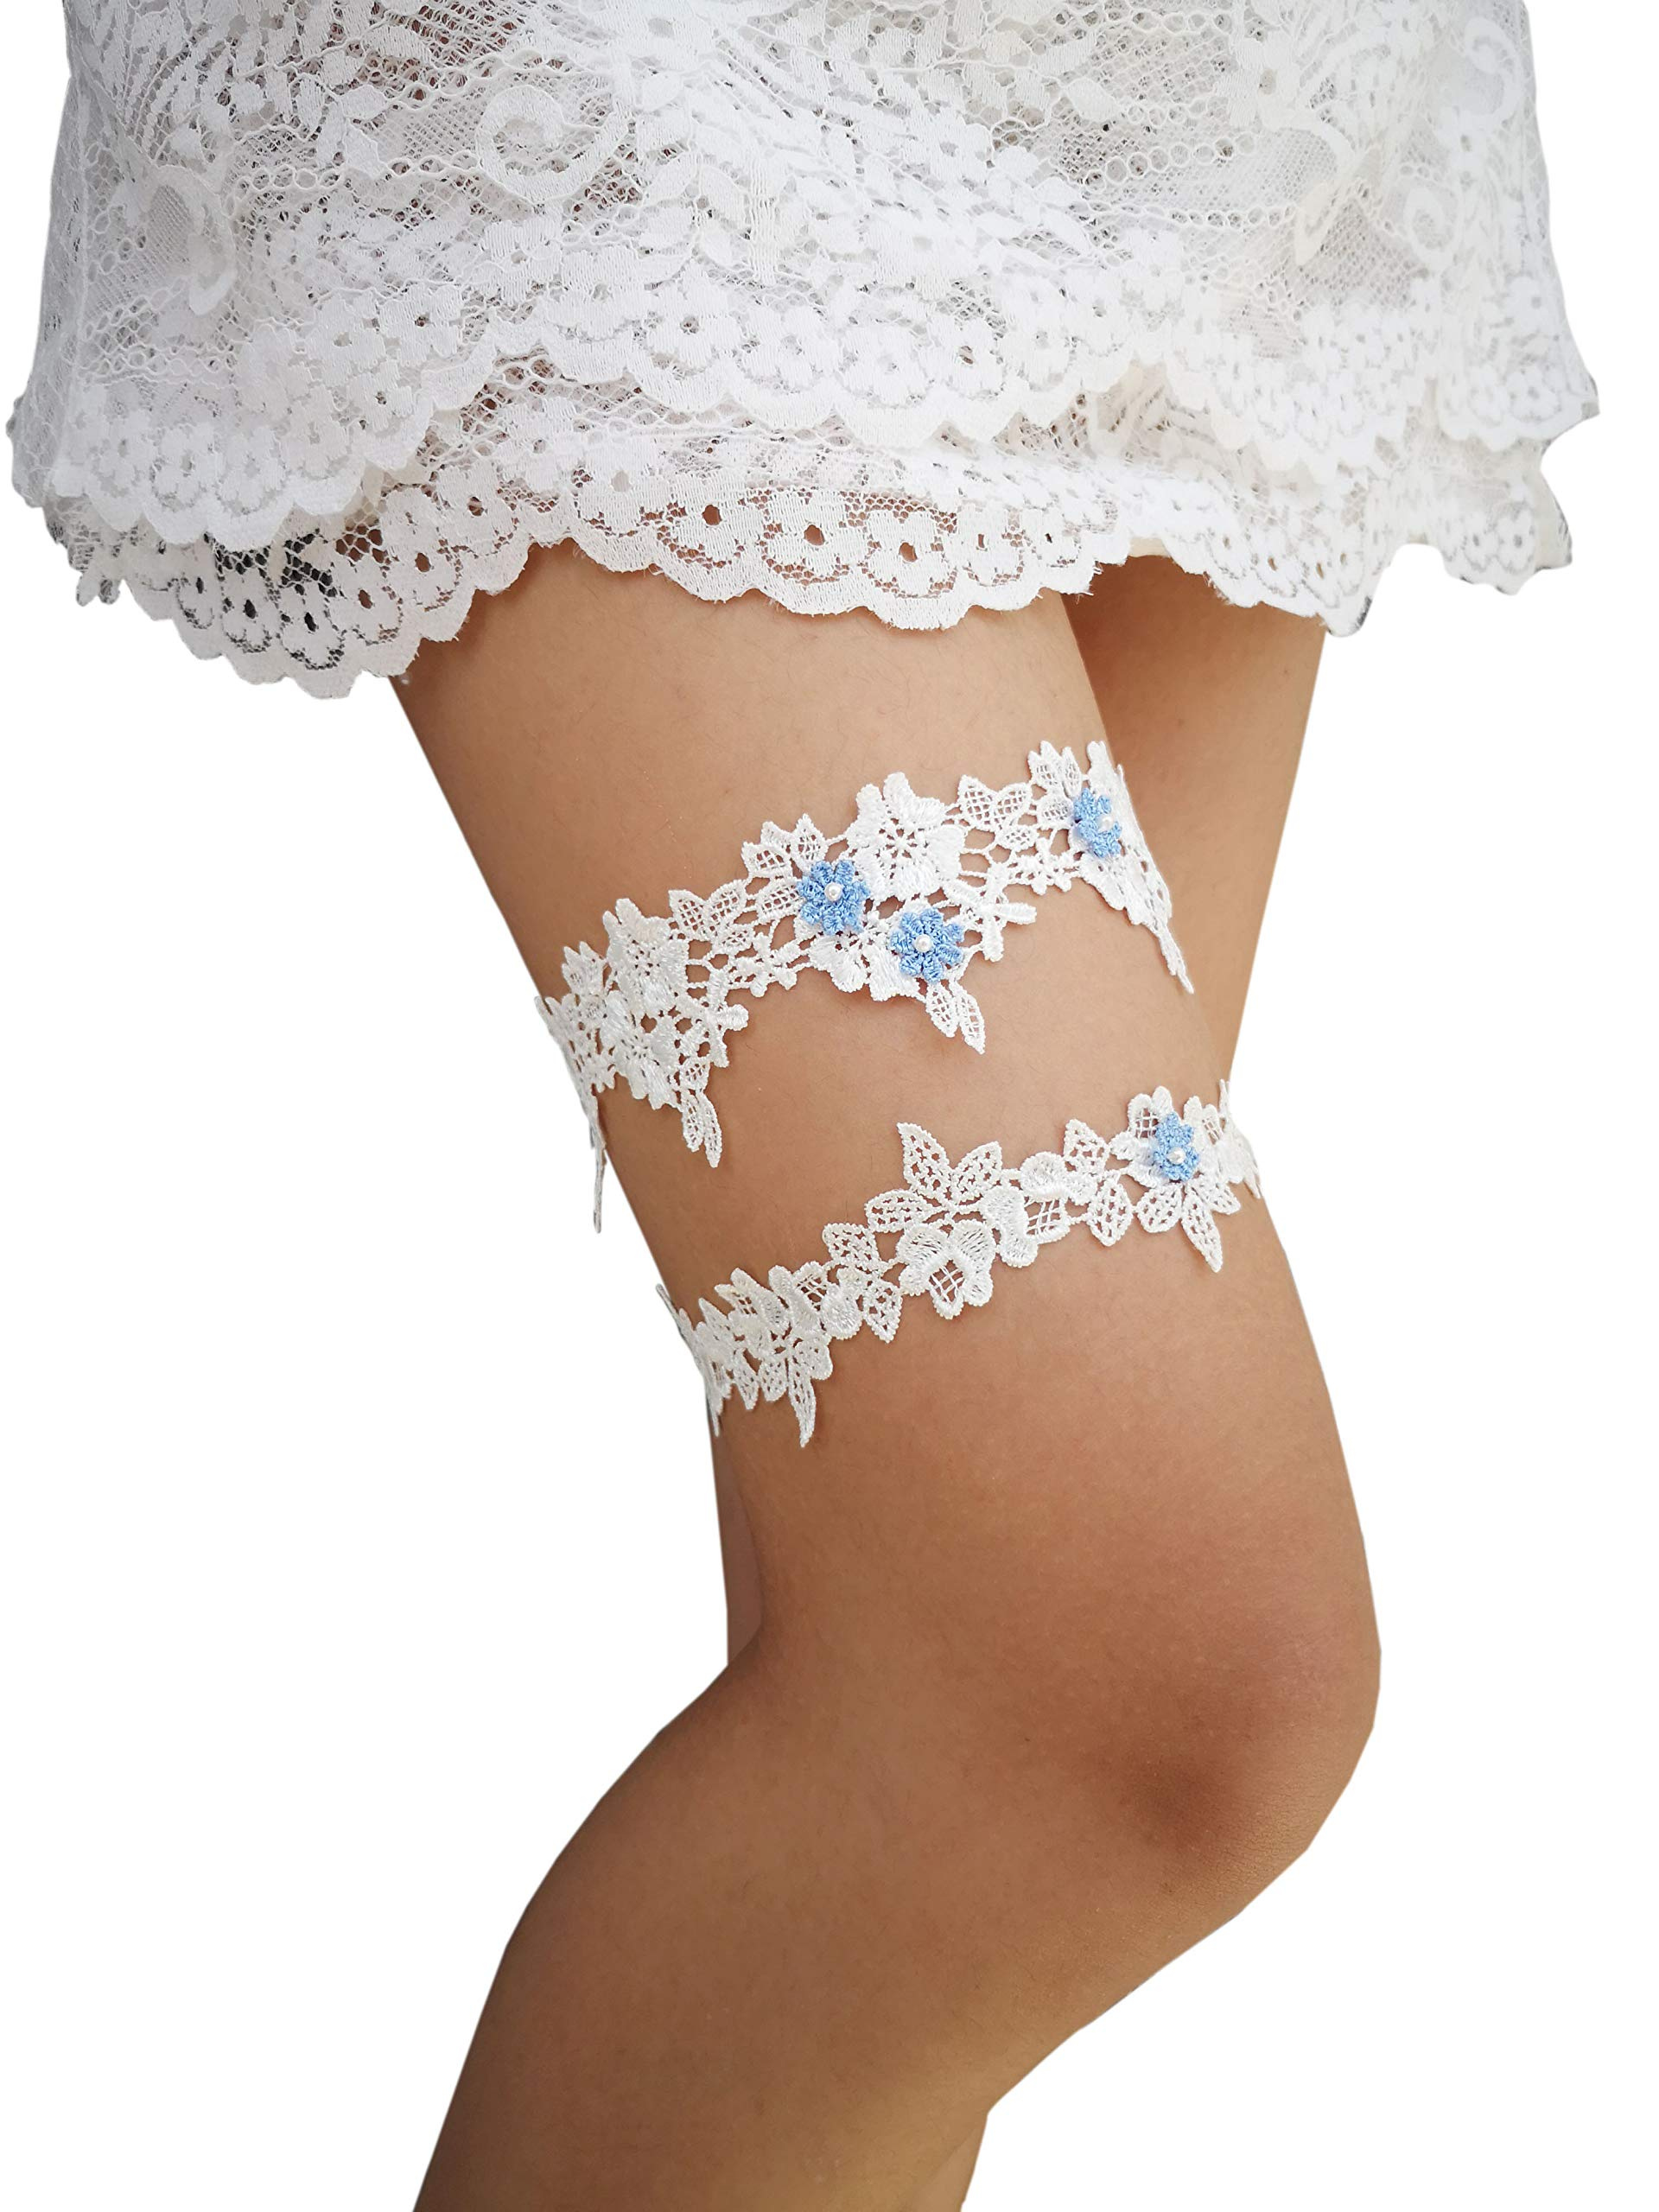 YuRongsxt Wedding Floral Garter Set Beaded Lace Garter Set Bridal Garter G02 …